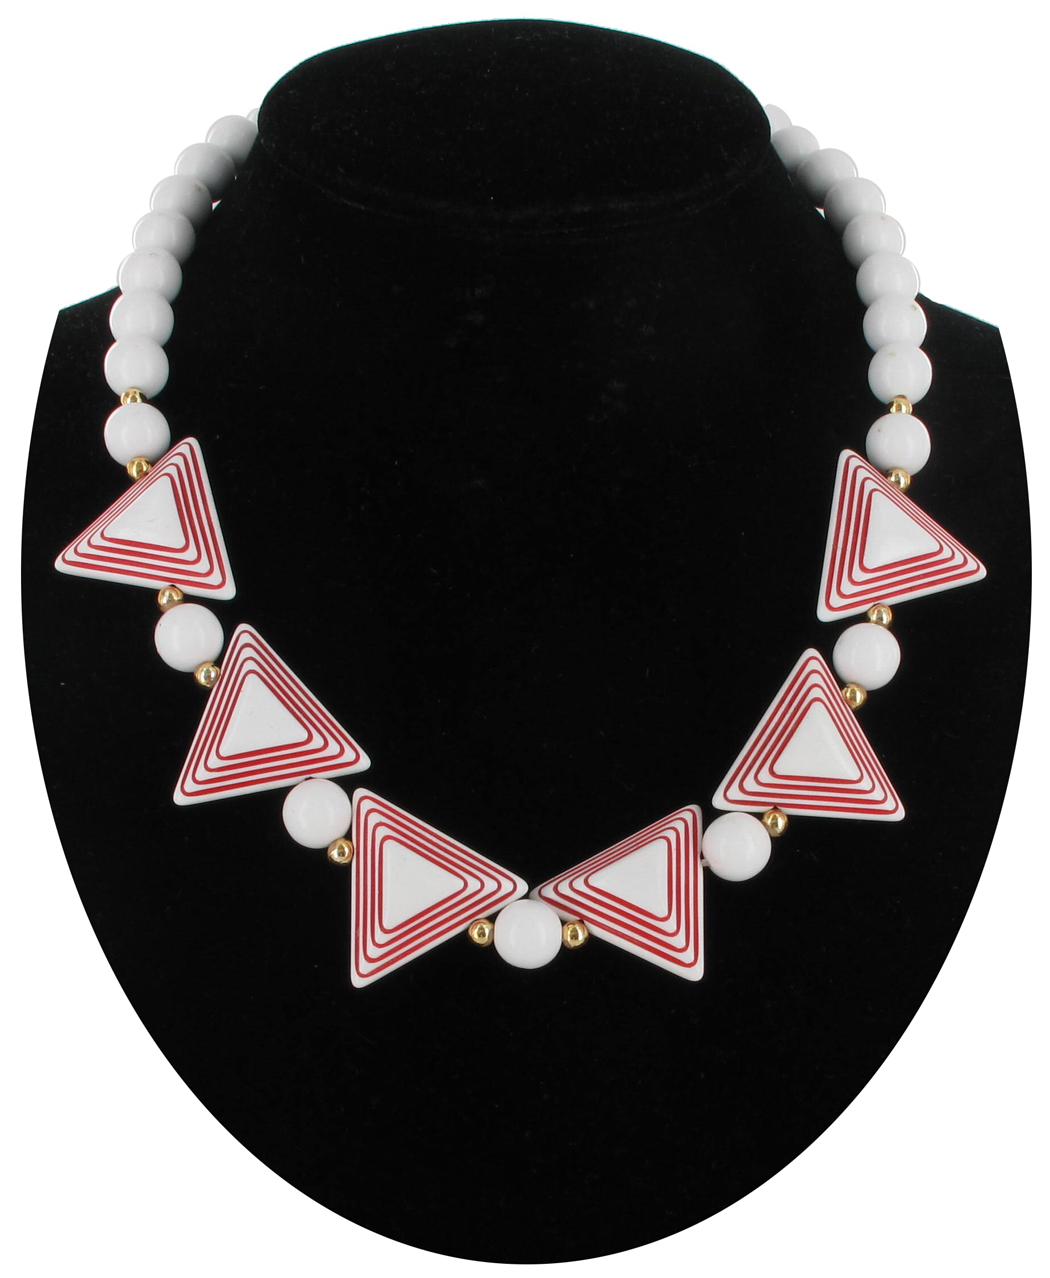 Vintage 1970S White Red Triangle Beaded Lucite Necklace Choker